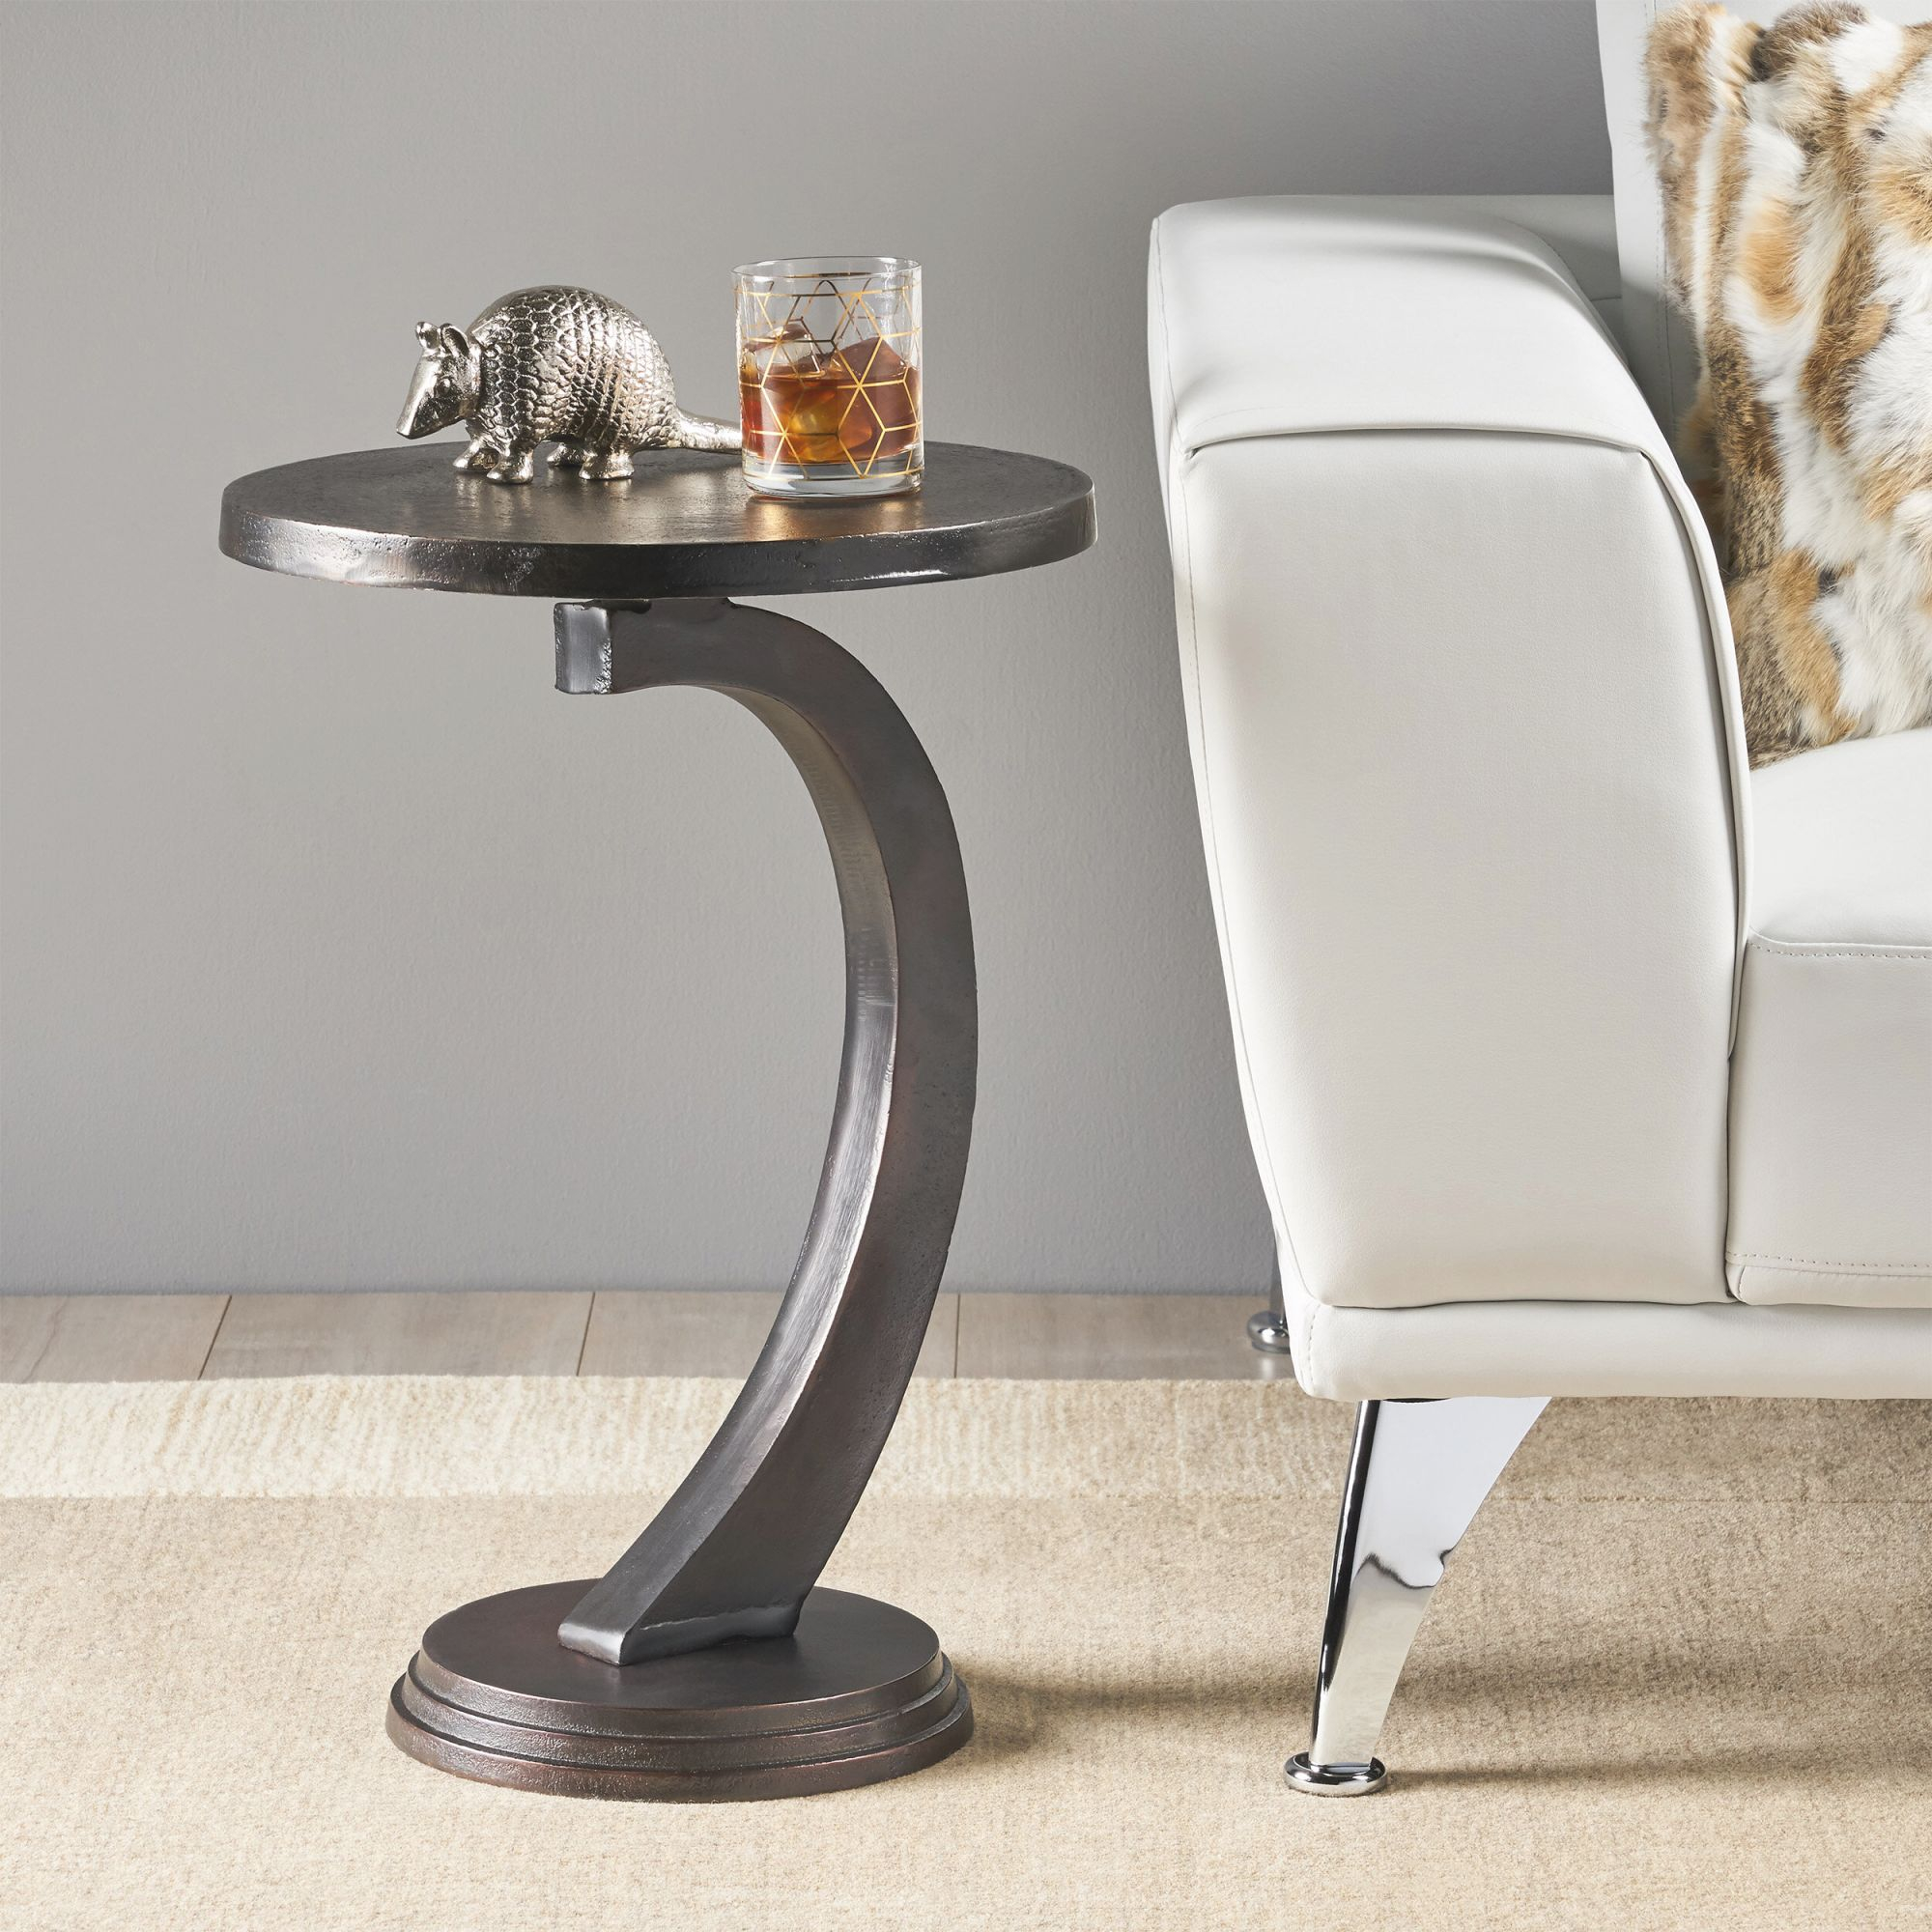 Victoria Modern Aluminum Accent Table intended for Accent Tables For Living Room